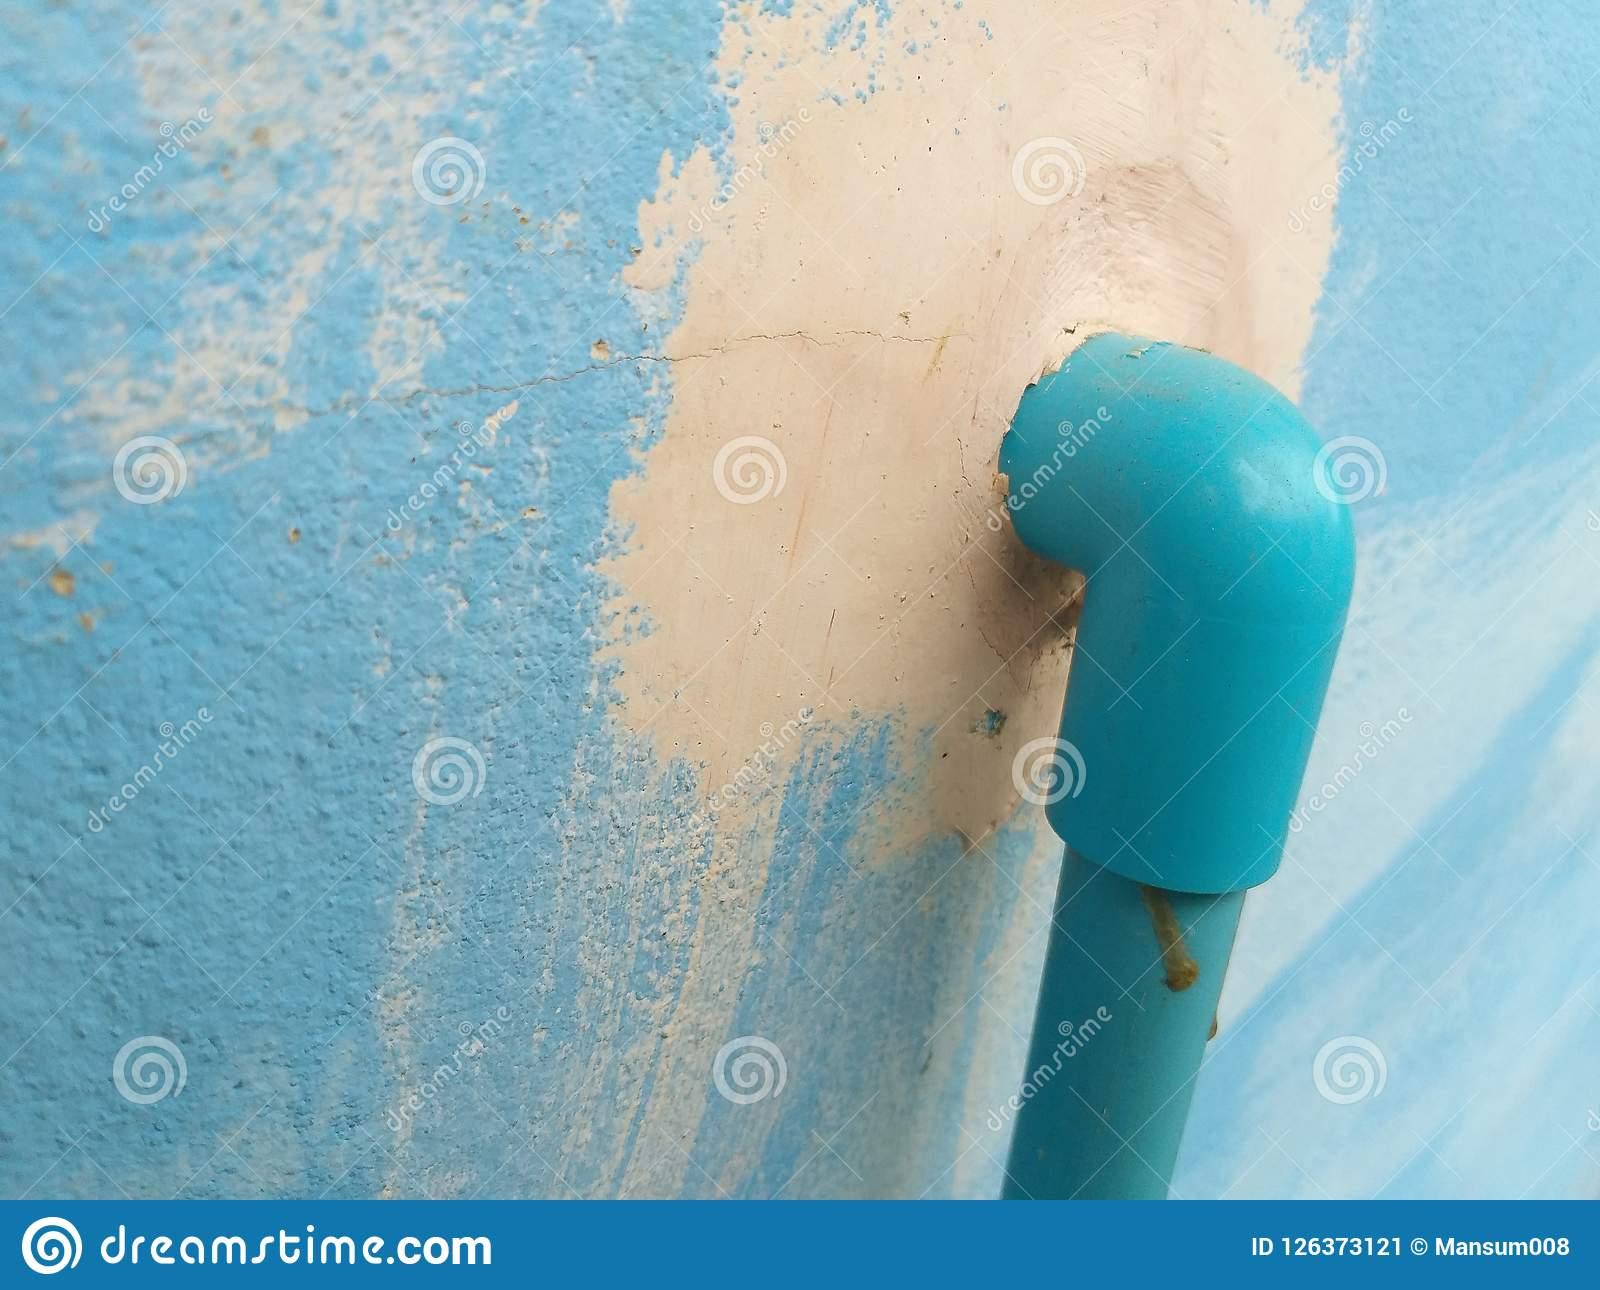 Pvc Pipe On Blue Cement Wall Texture Stock Image - Image of